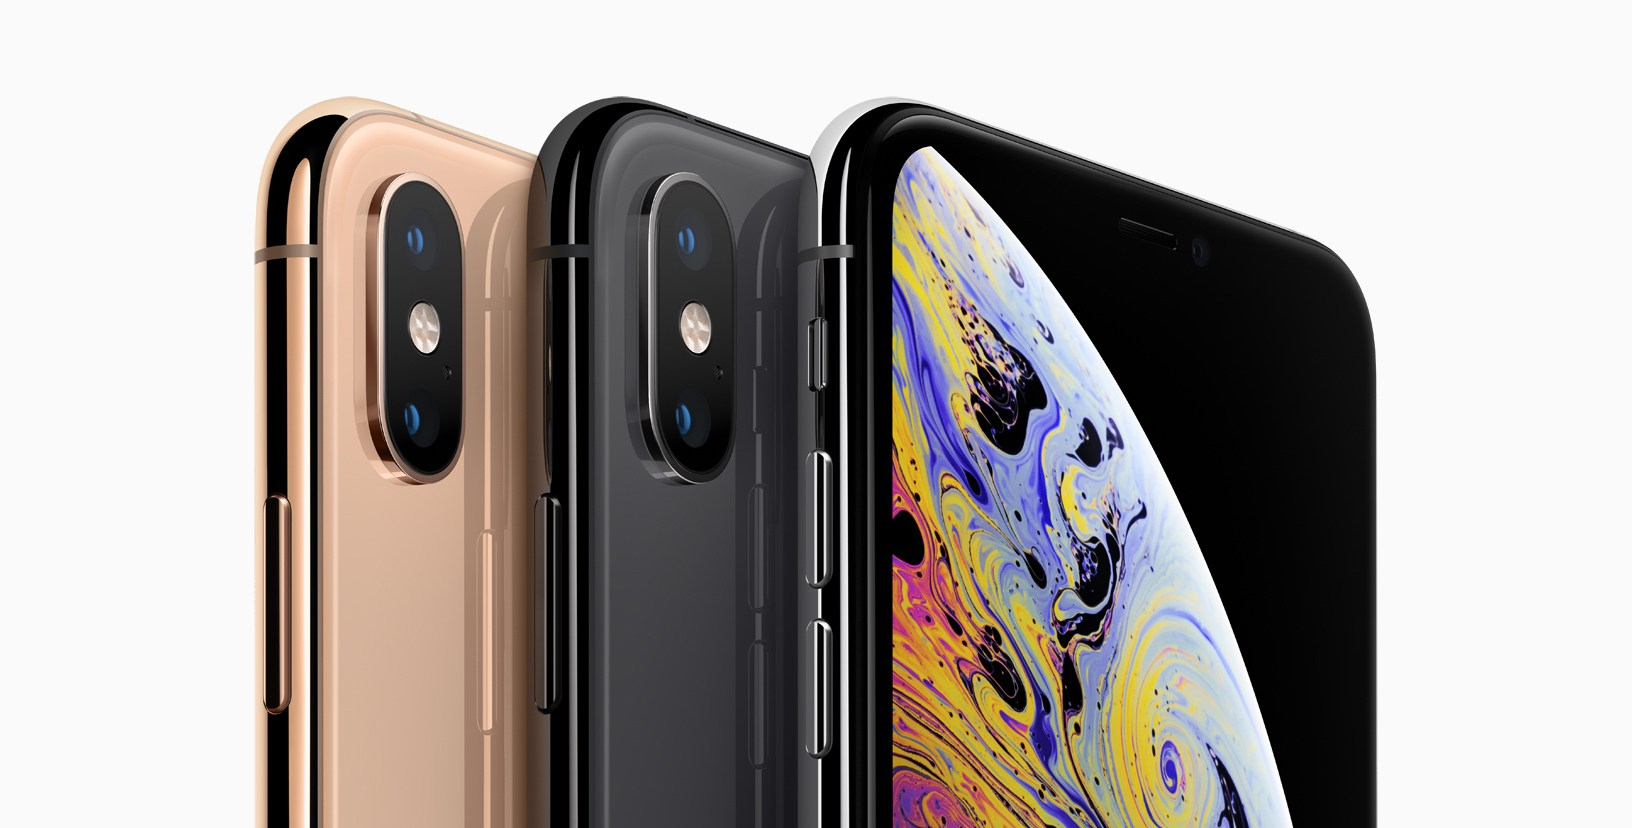 Apple-iPhone-Xs-line-up-09122018-copy.jpg